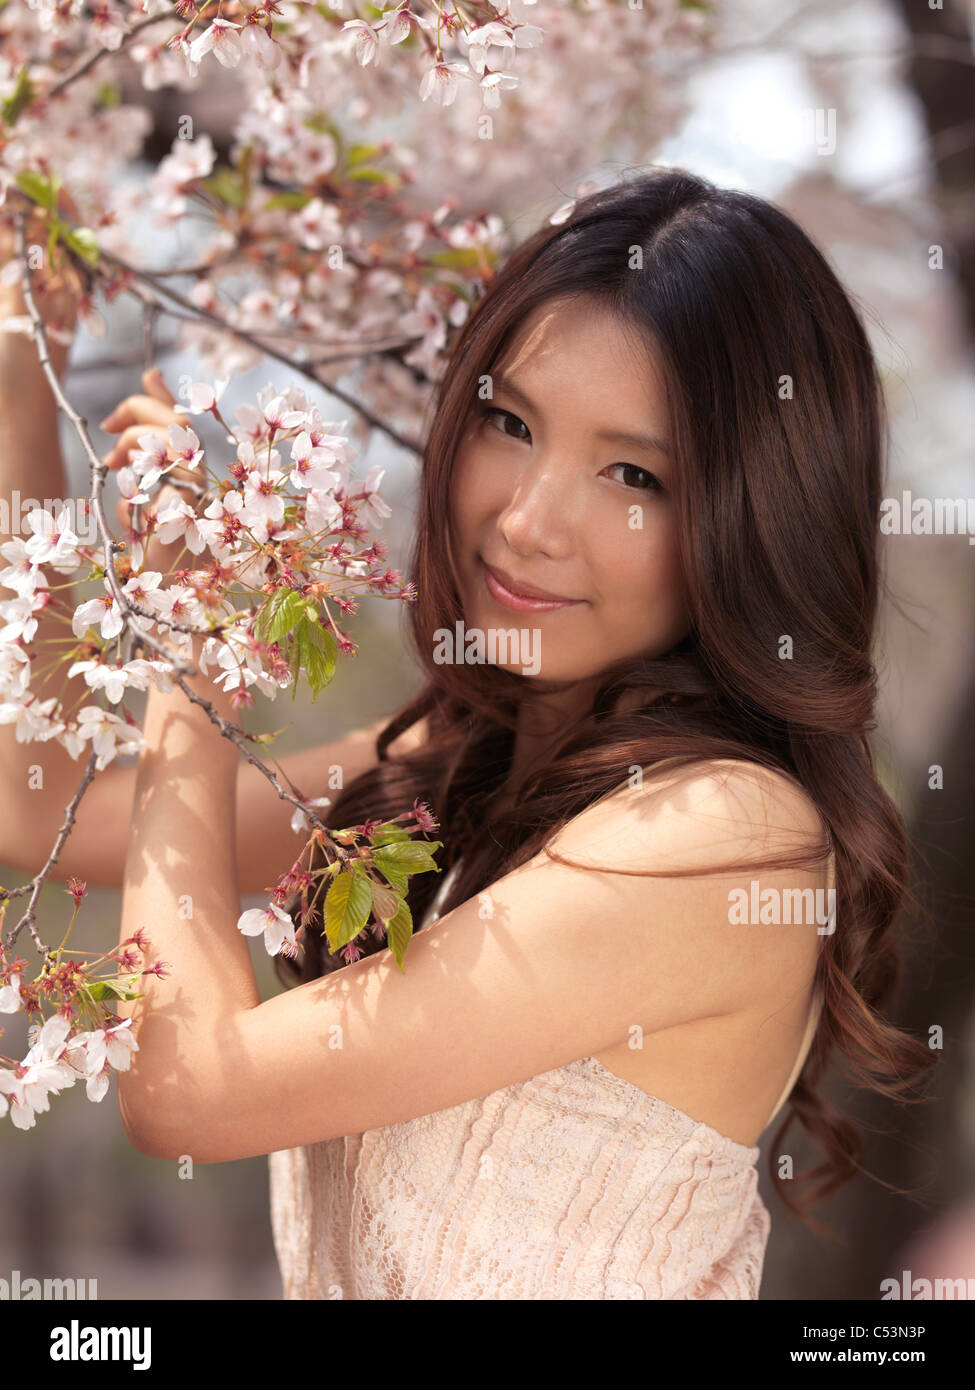 carefree asian singles Who is that hot ad girl, new york, ny 10,014 likes 10 talking about this a blog dedicated to finding out who hot unknown actresses and models are.